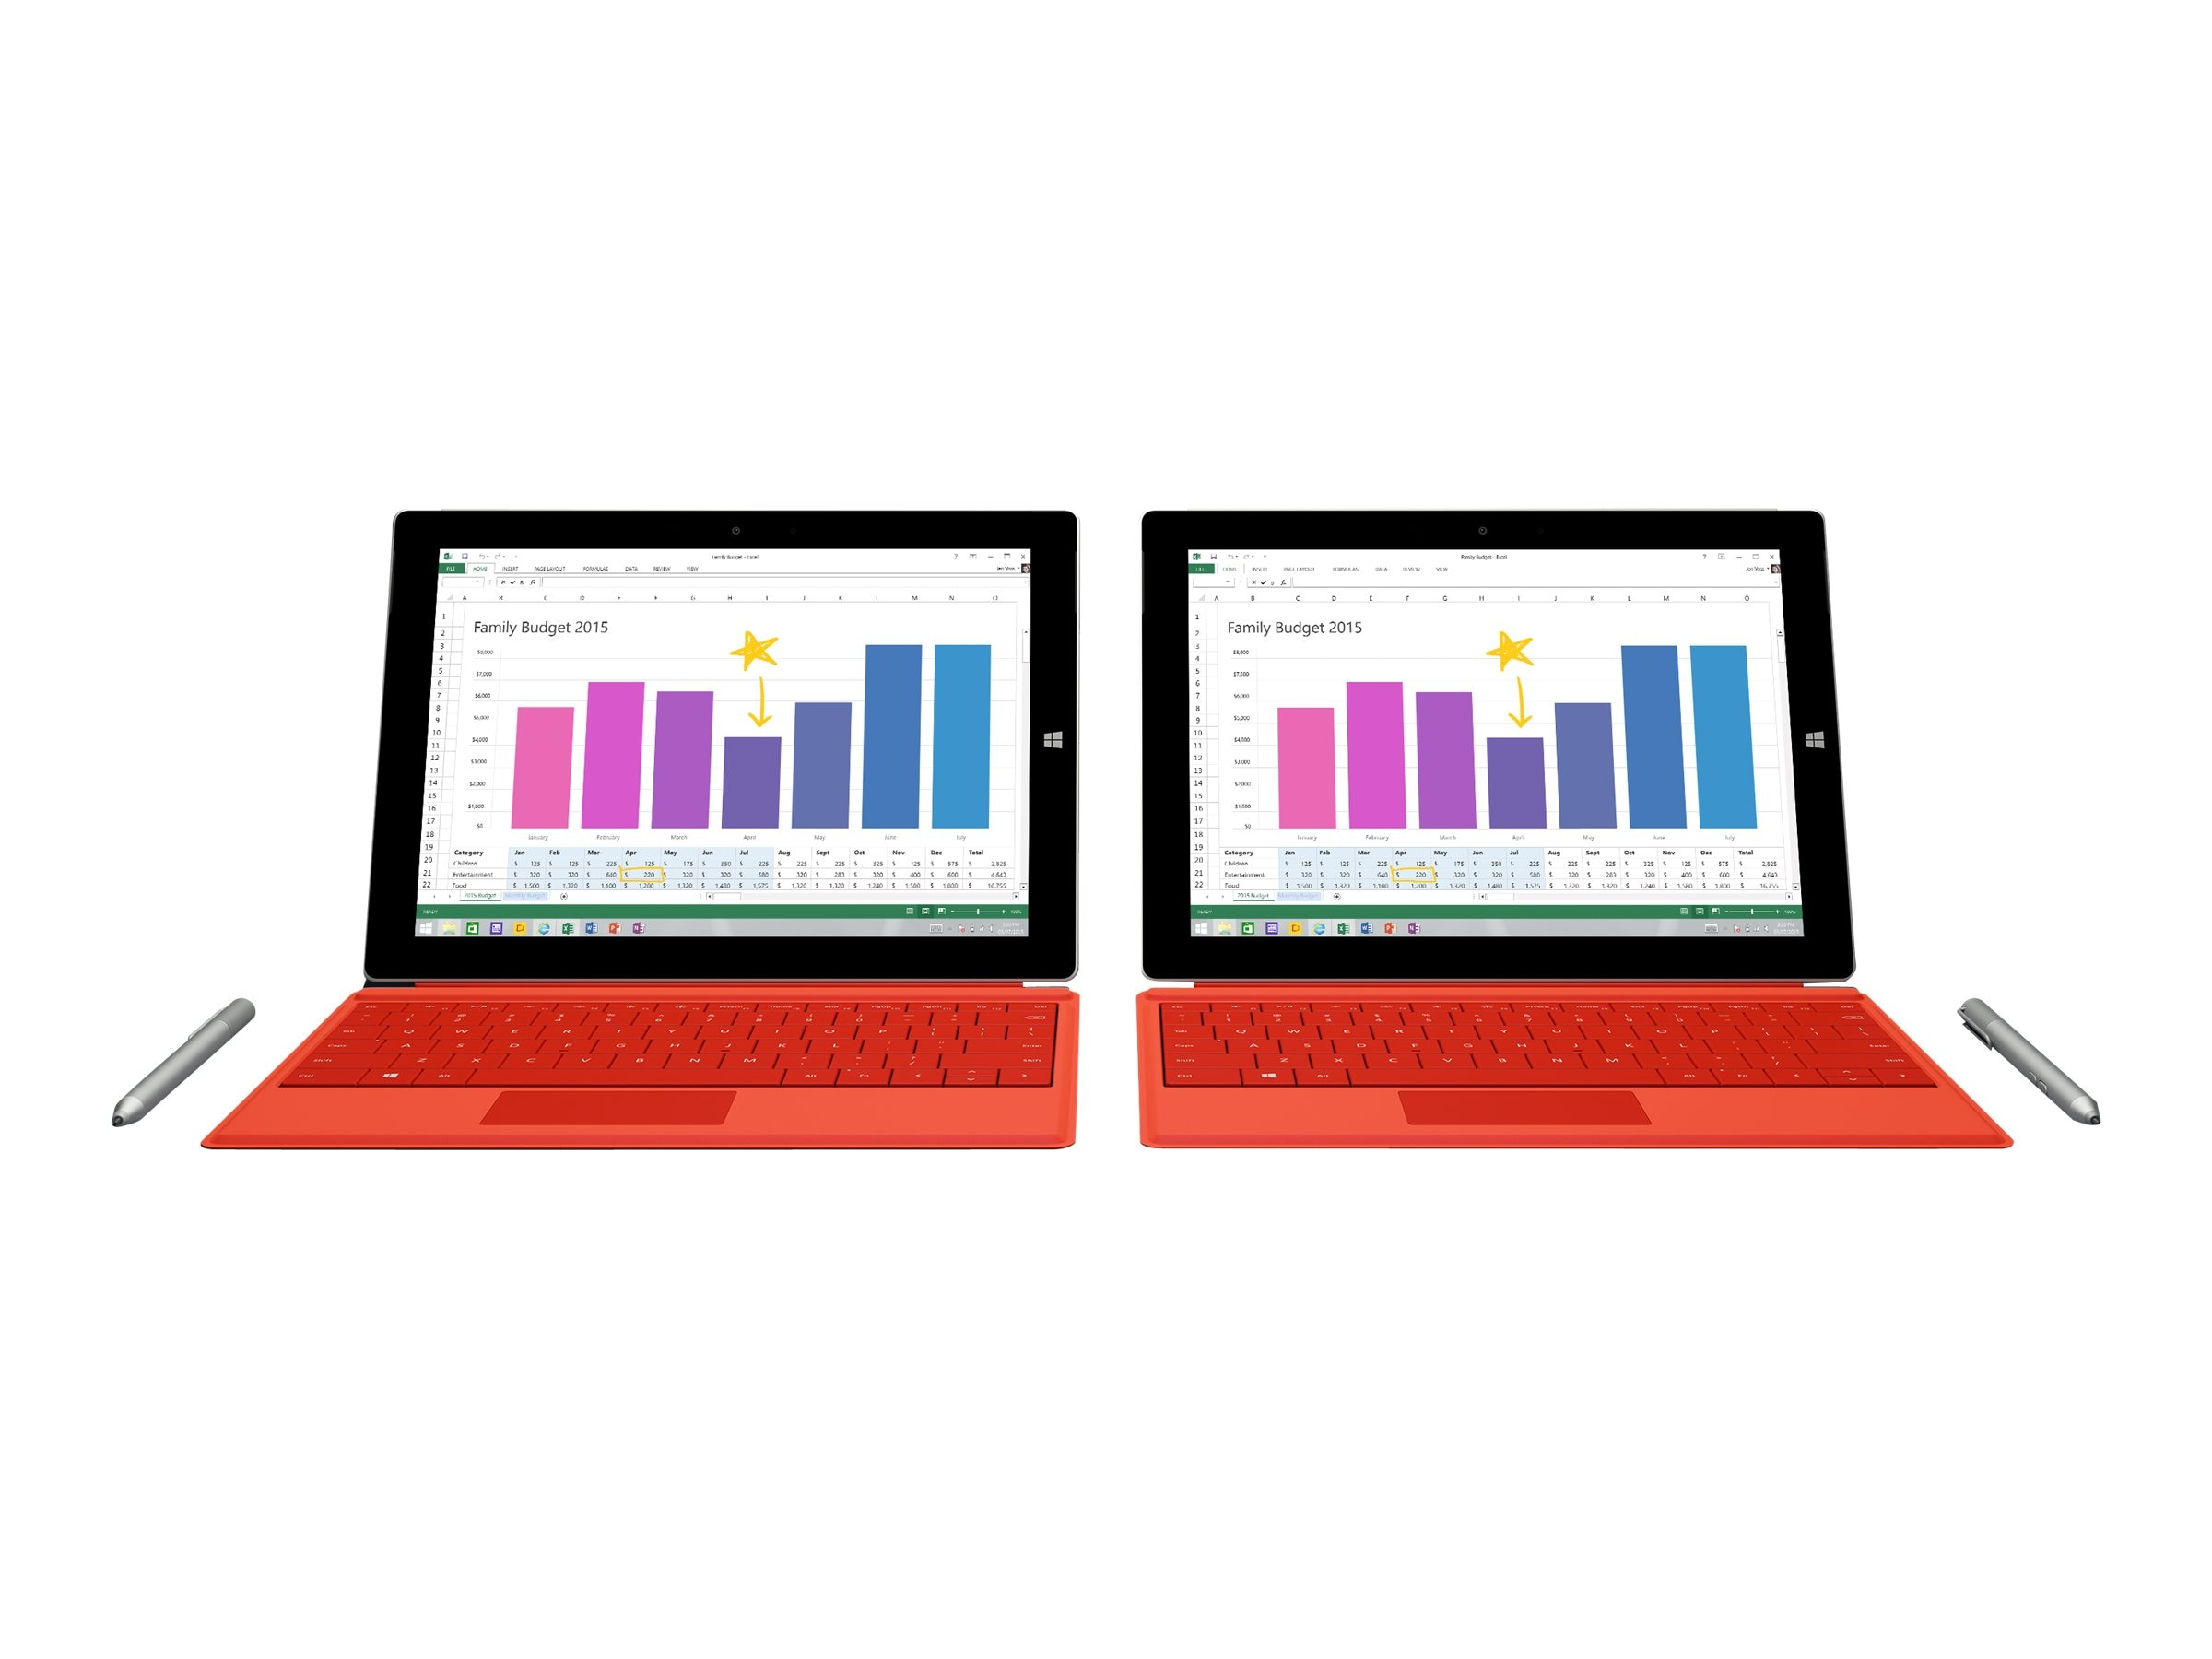 Microsoft Surface 3 Type Cover, Bright Red, GV7-00004, 19459516, Keyboards & Keypads